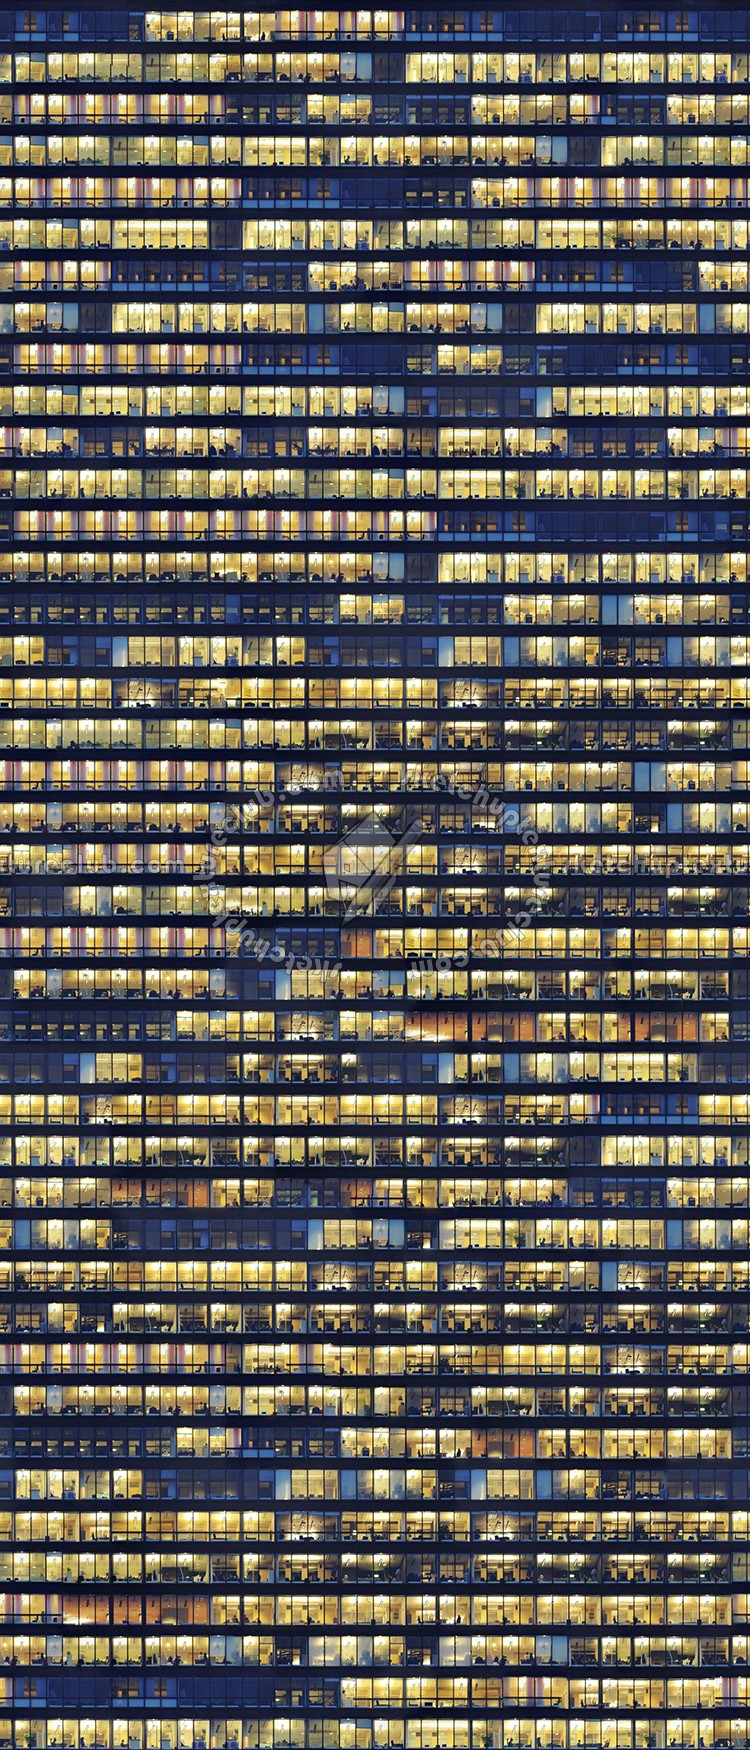 Black And Yellow Wallpaper Glass Building Skyscraper Texture Seamless 00958